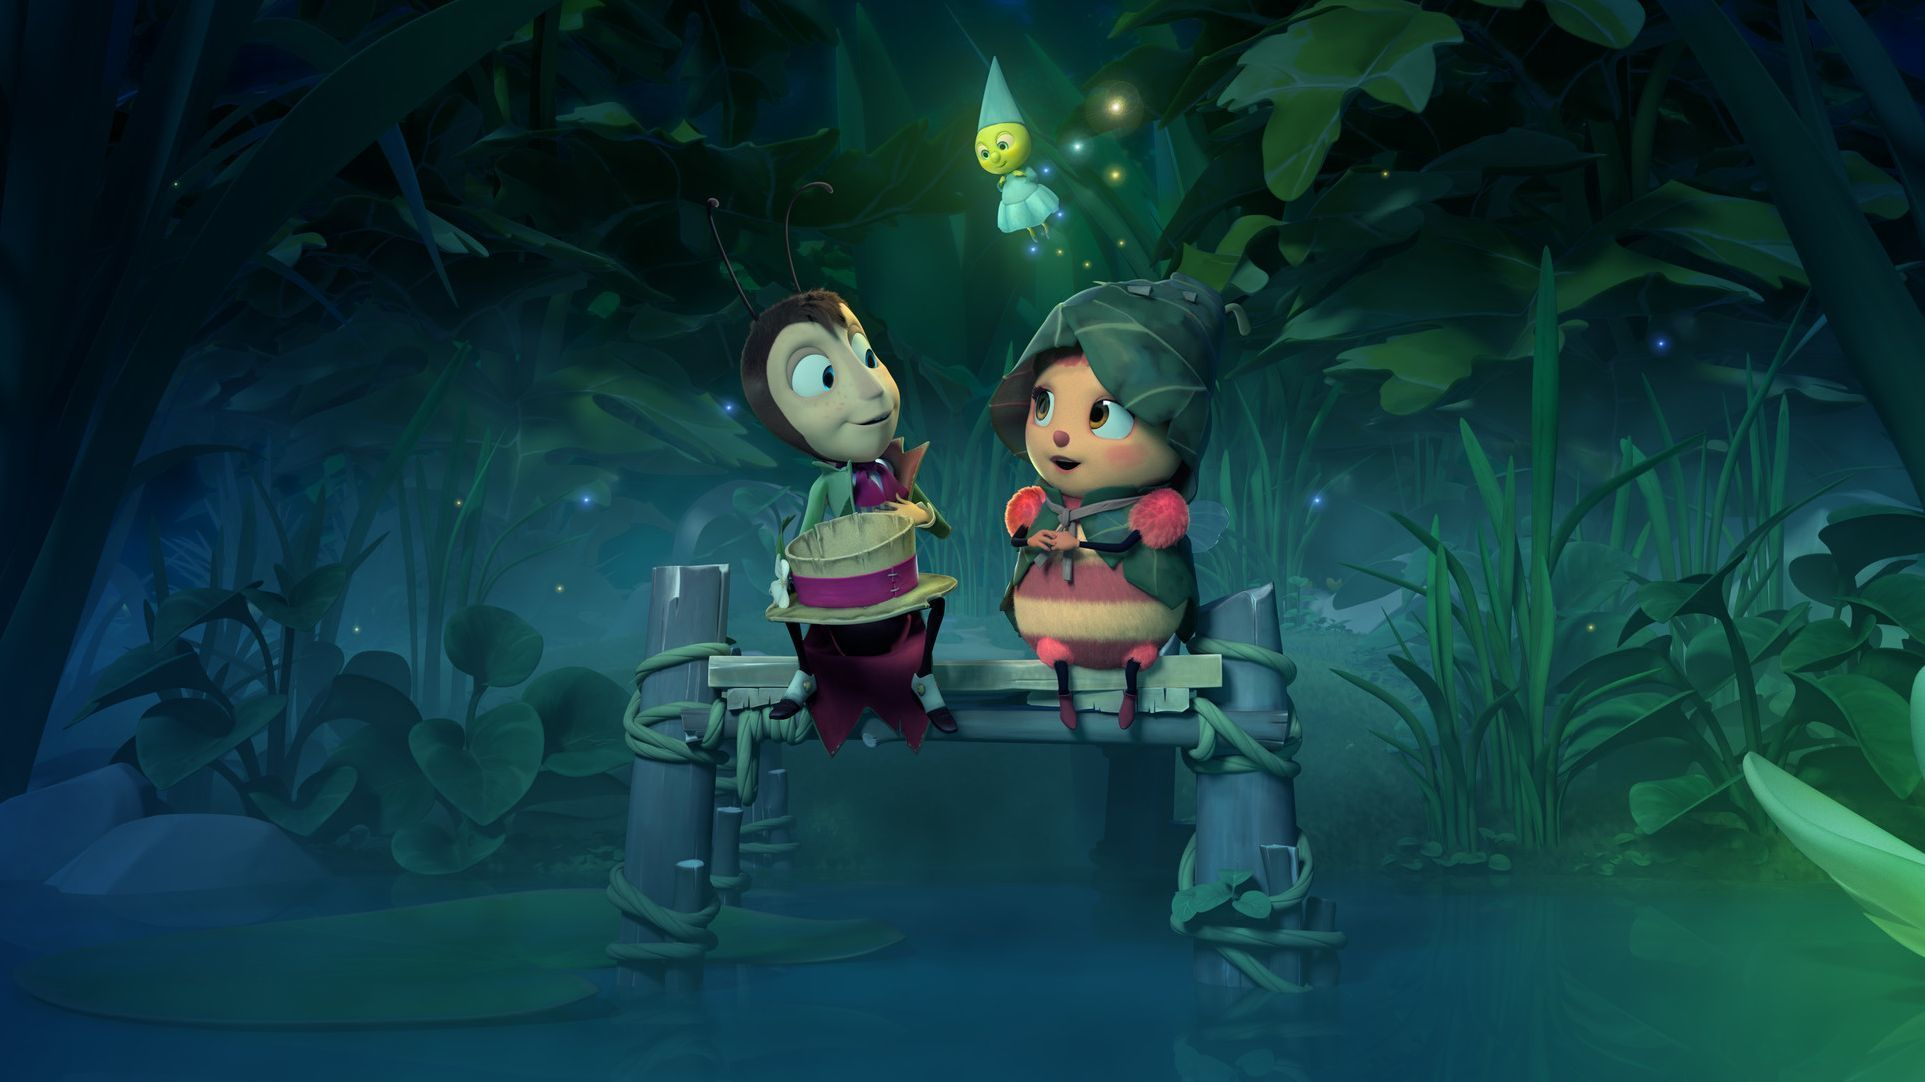 Review: Animated import 'Tall Tales' may cause even the little ones to nod off